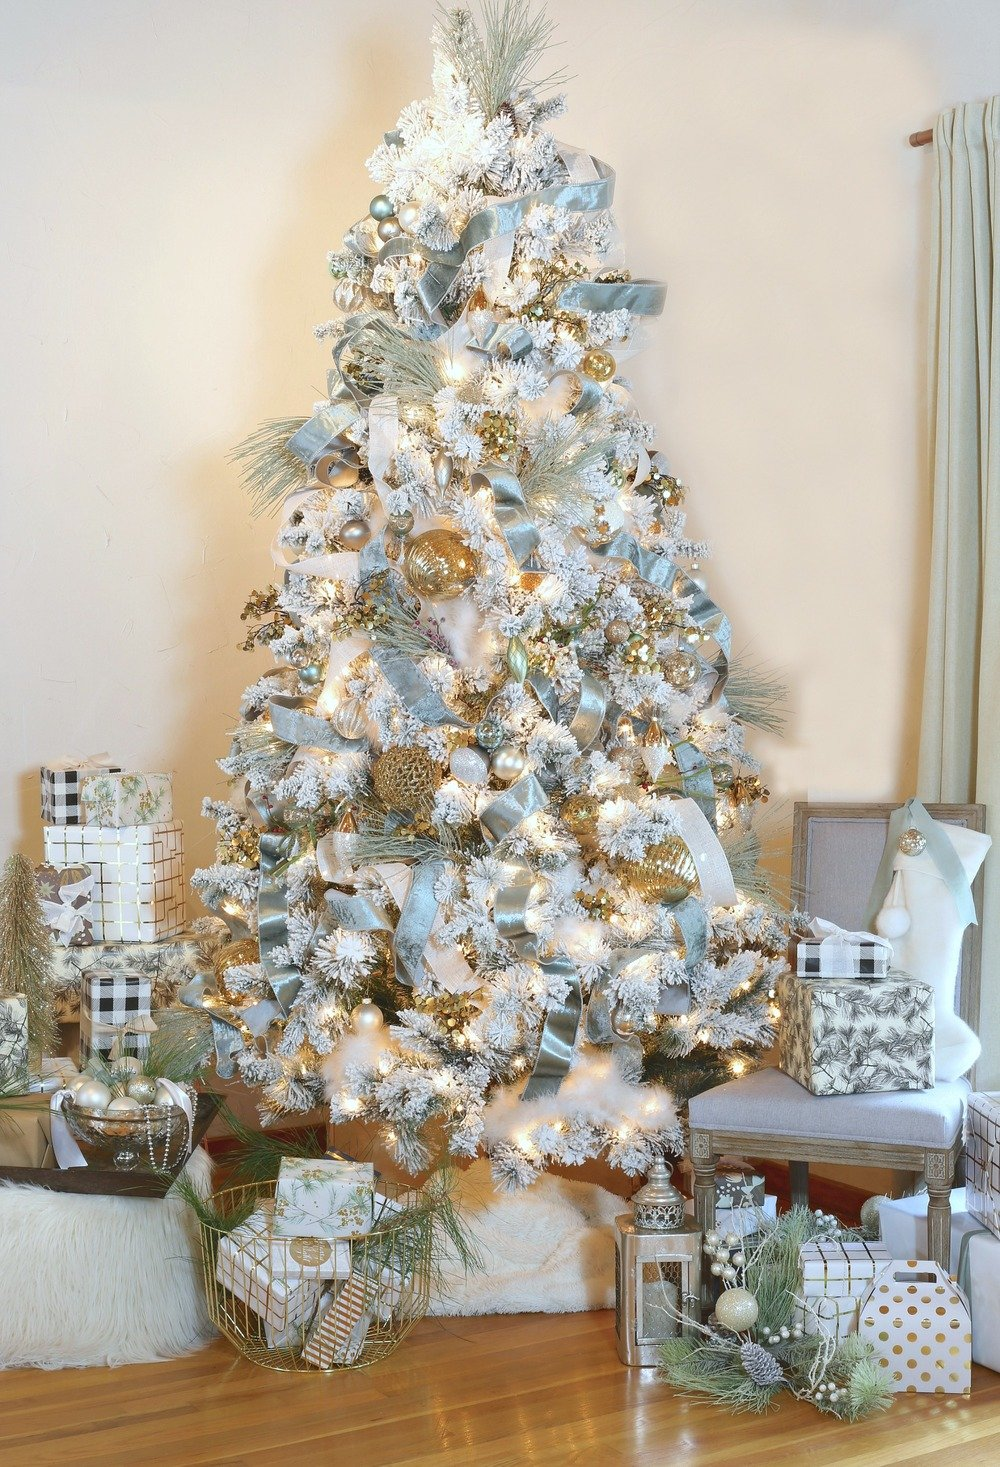 Flocked Christmas Tree with Metallic Ornaments